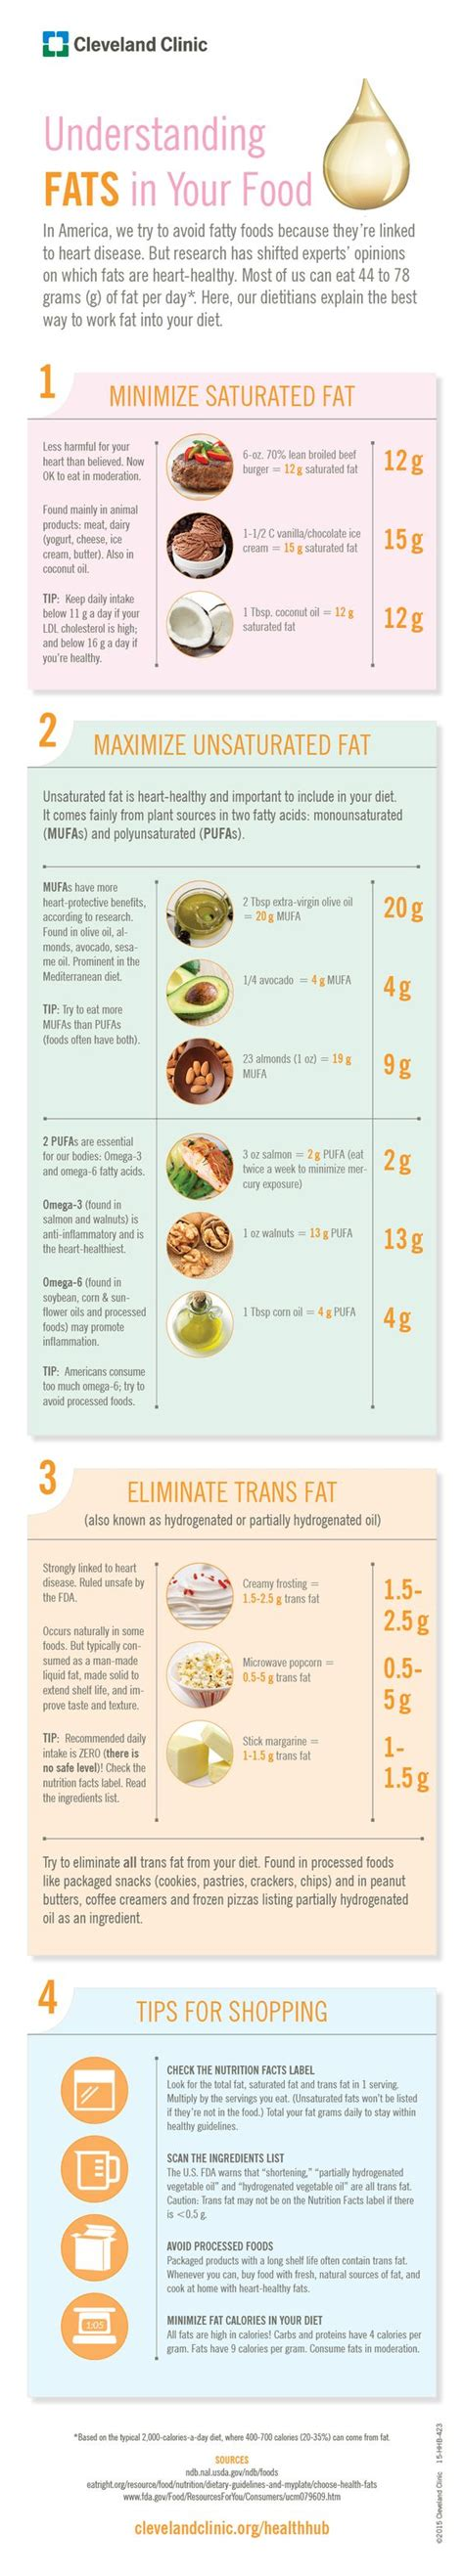 healthy fats infographic are you fats or bad fats infographic the o